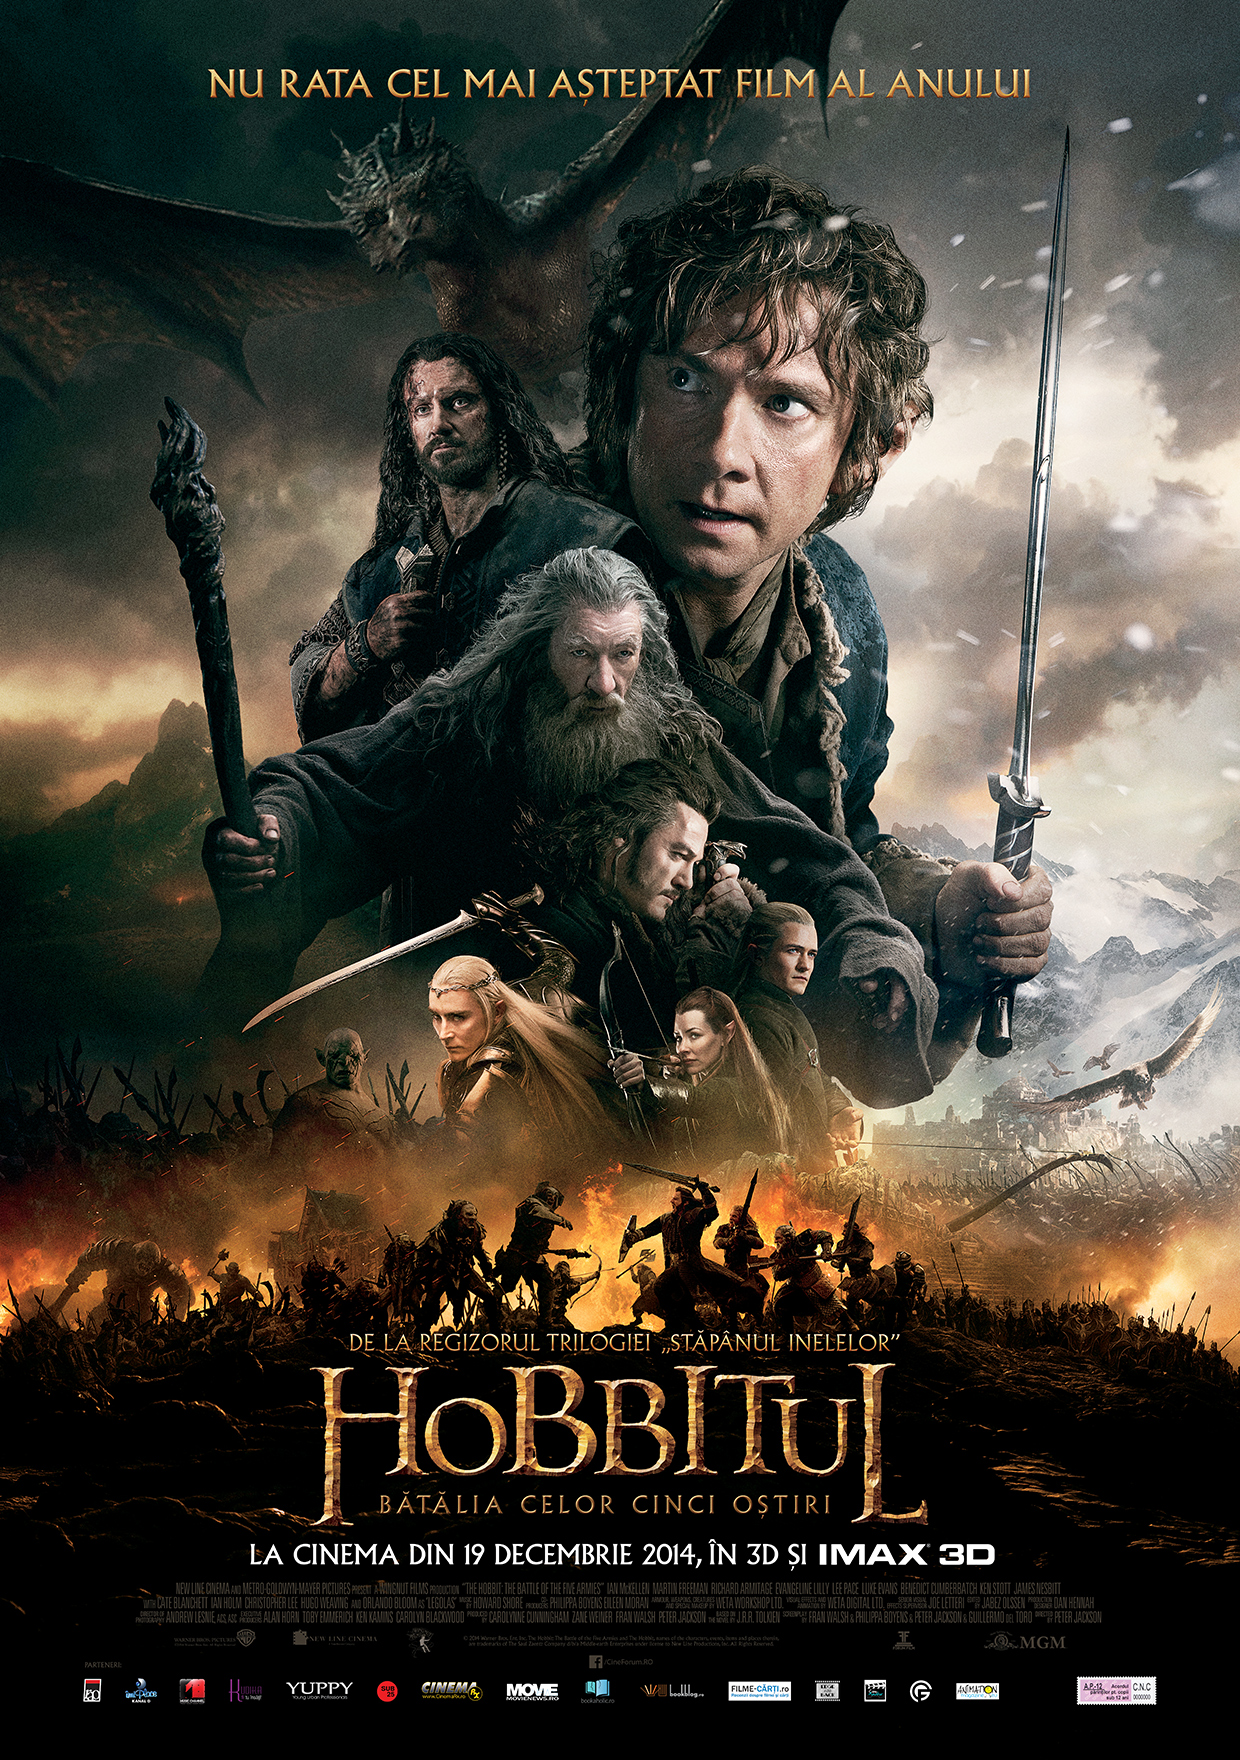 Hobbitul: Batalia celor cinci ostiri – 3D / The Hobbit: Battle of the Five Armies – 3D (Premiera)